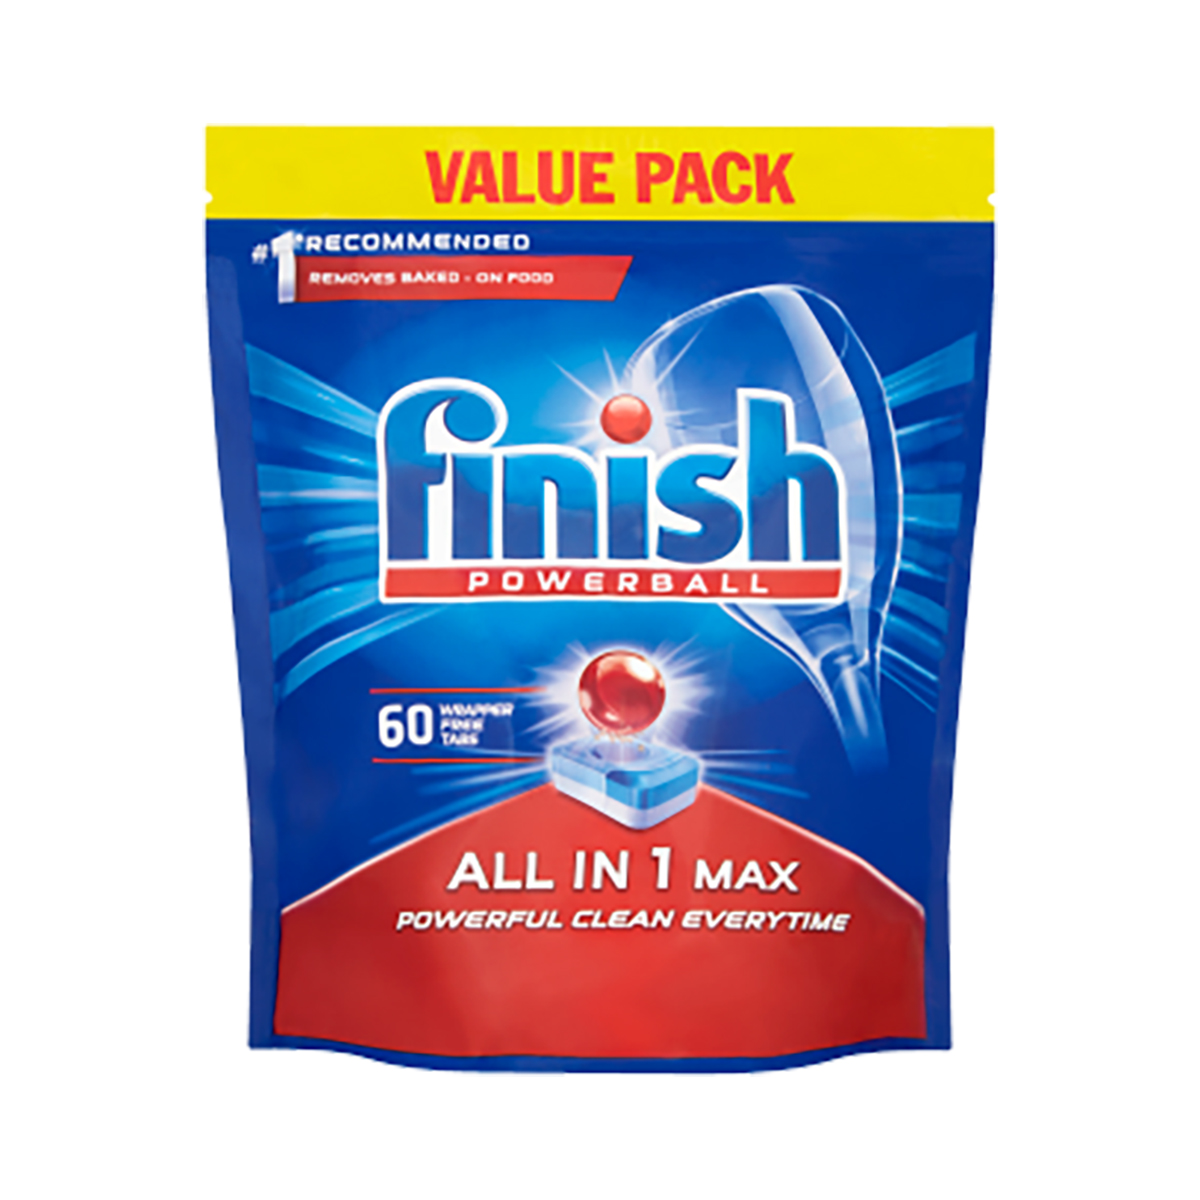 Dishwashing products Finish Dishwasher Powerball Tablets All-in-1 Ref RB797730 [Pack 60]